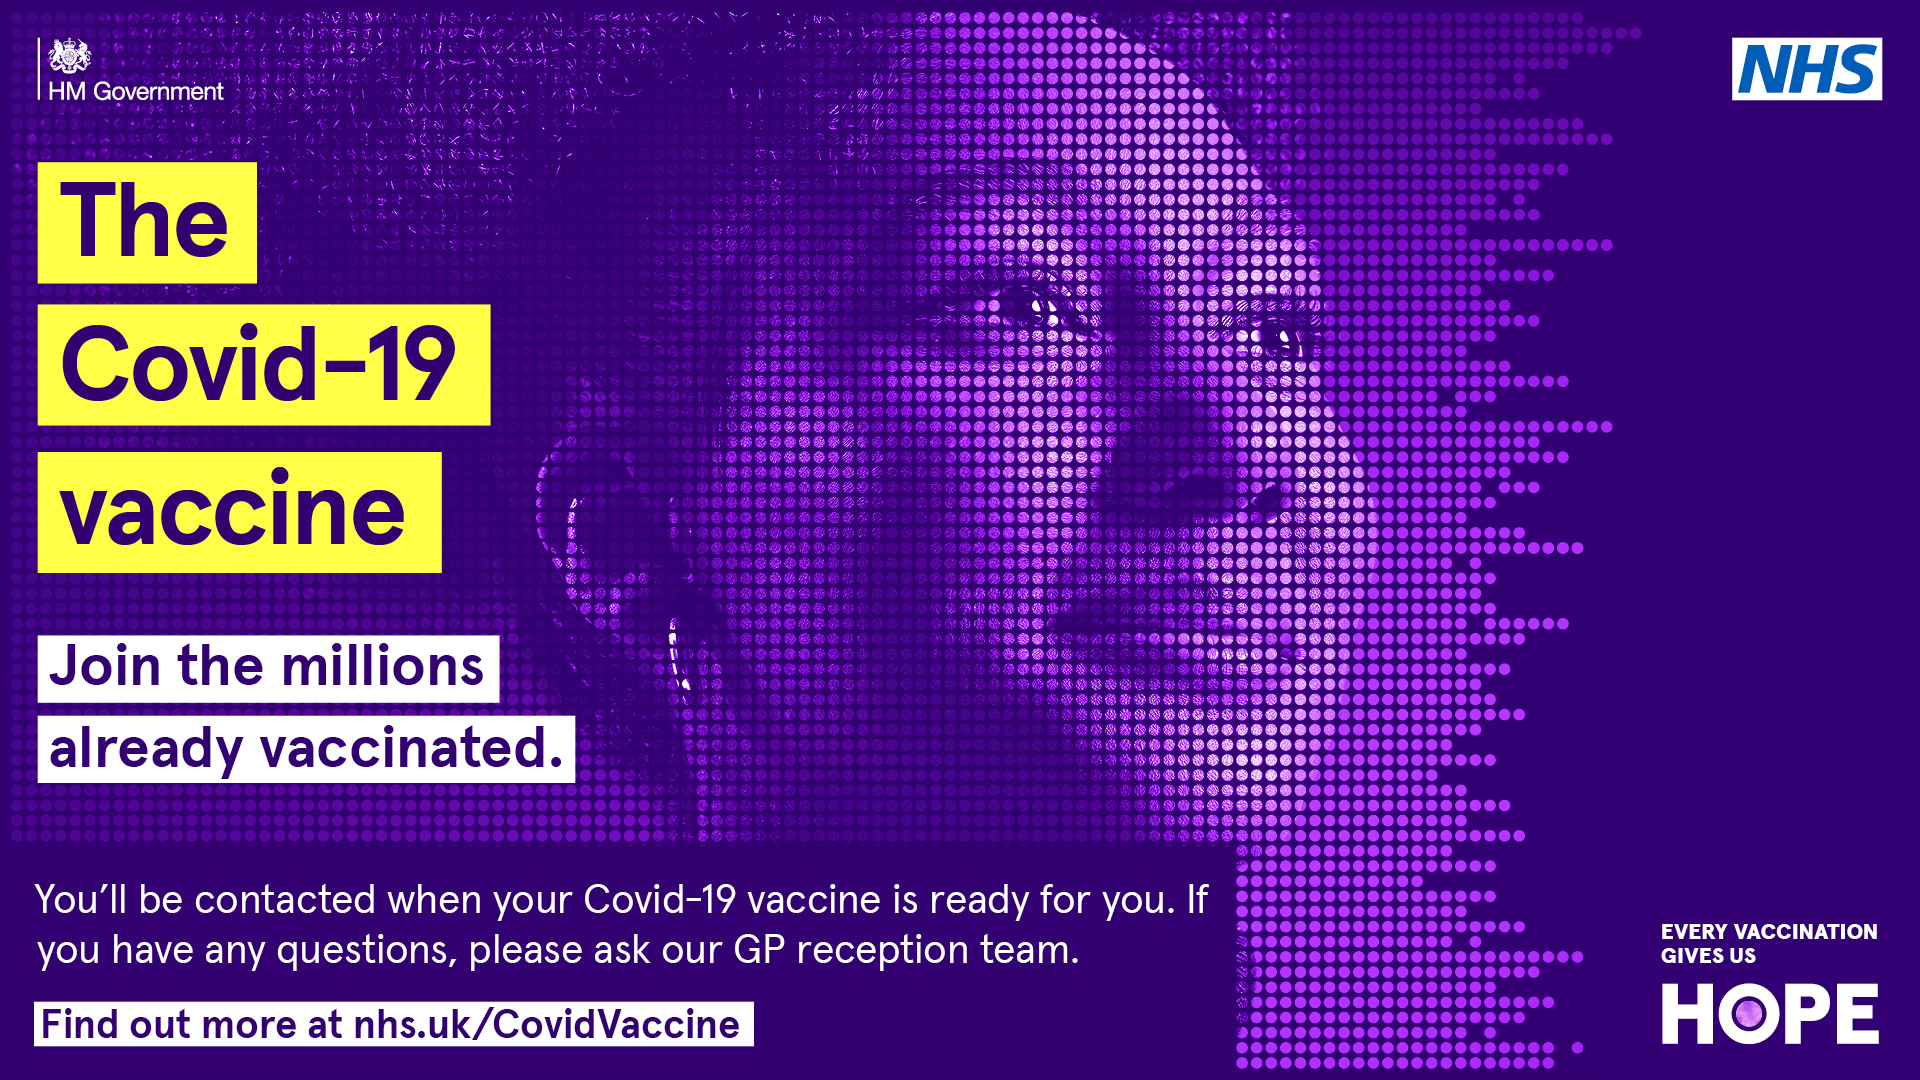 The Covid-19 Vaccine join the millions already vaccinated you'll be contacted when your covid-19 vaccine if ready for you if you have any questions please ask our gp reception team